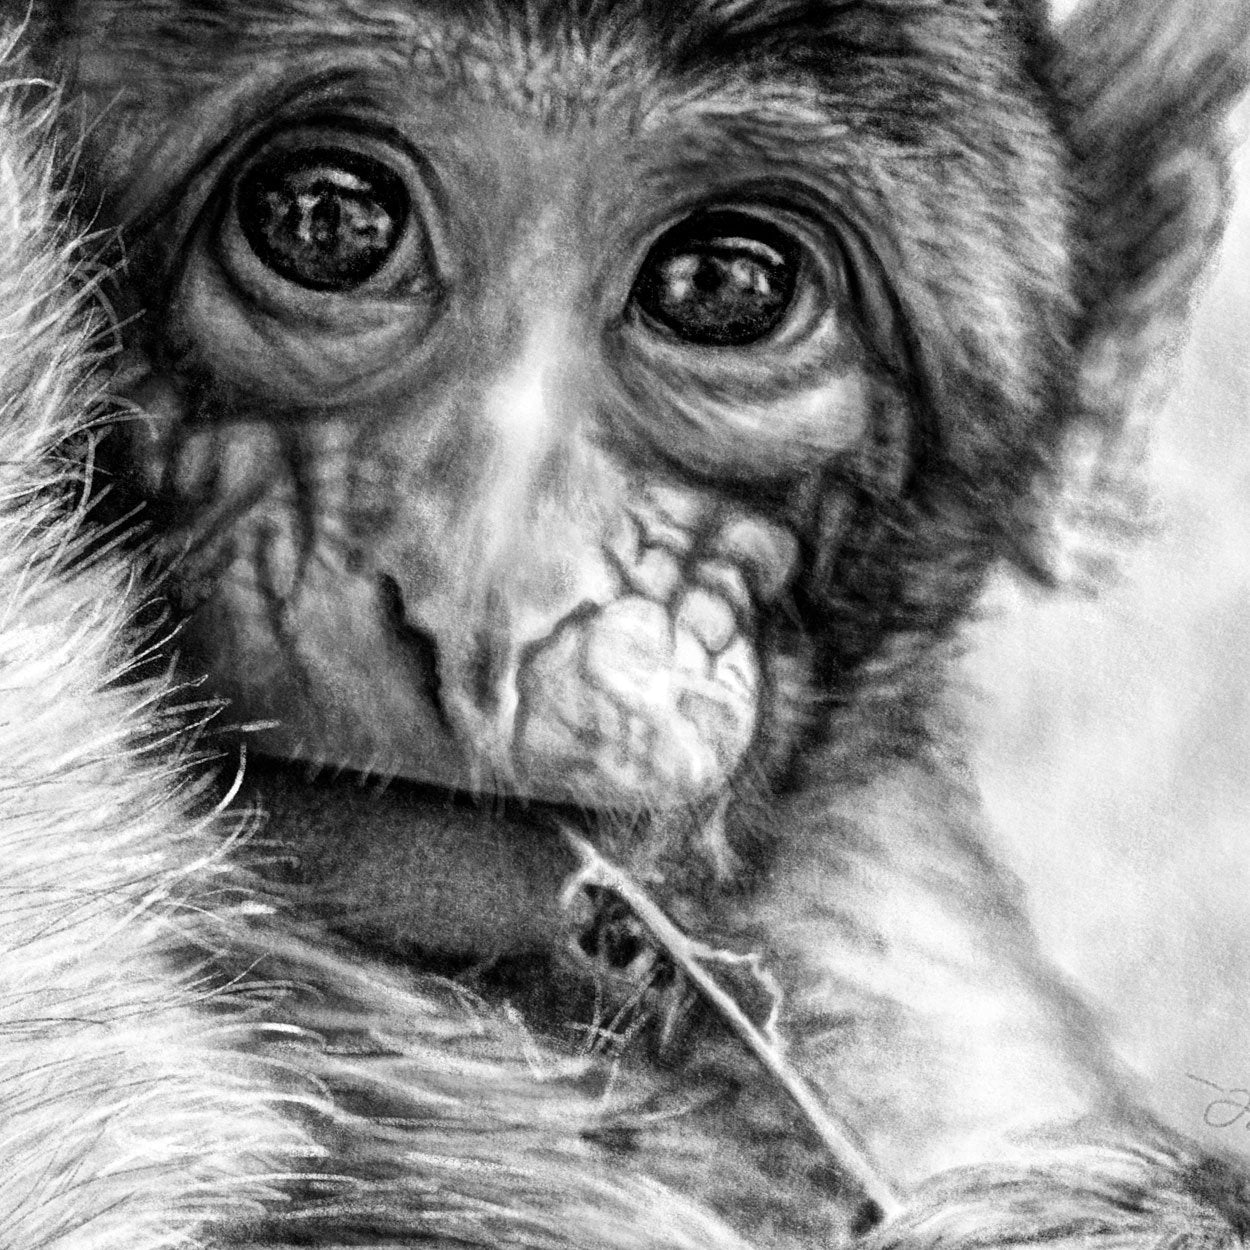 Macaque Baby Drawing Close-up - The Thriving Wild